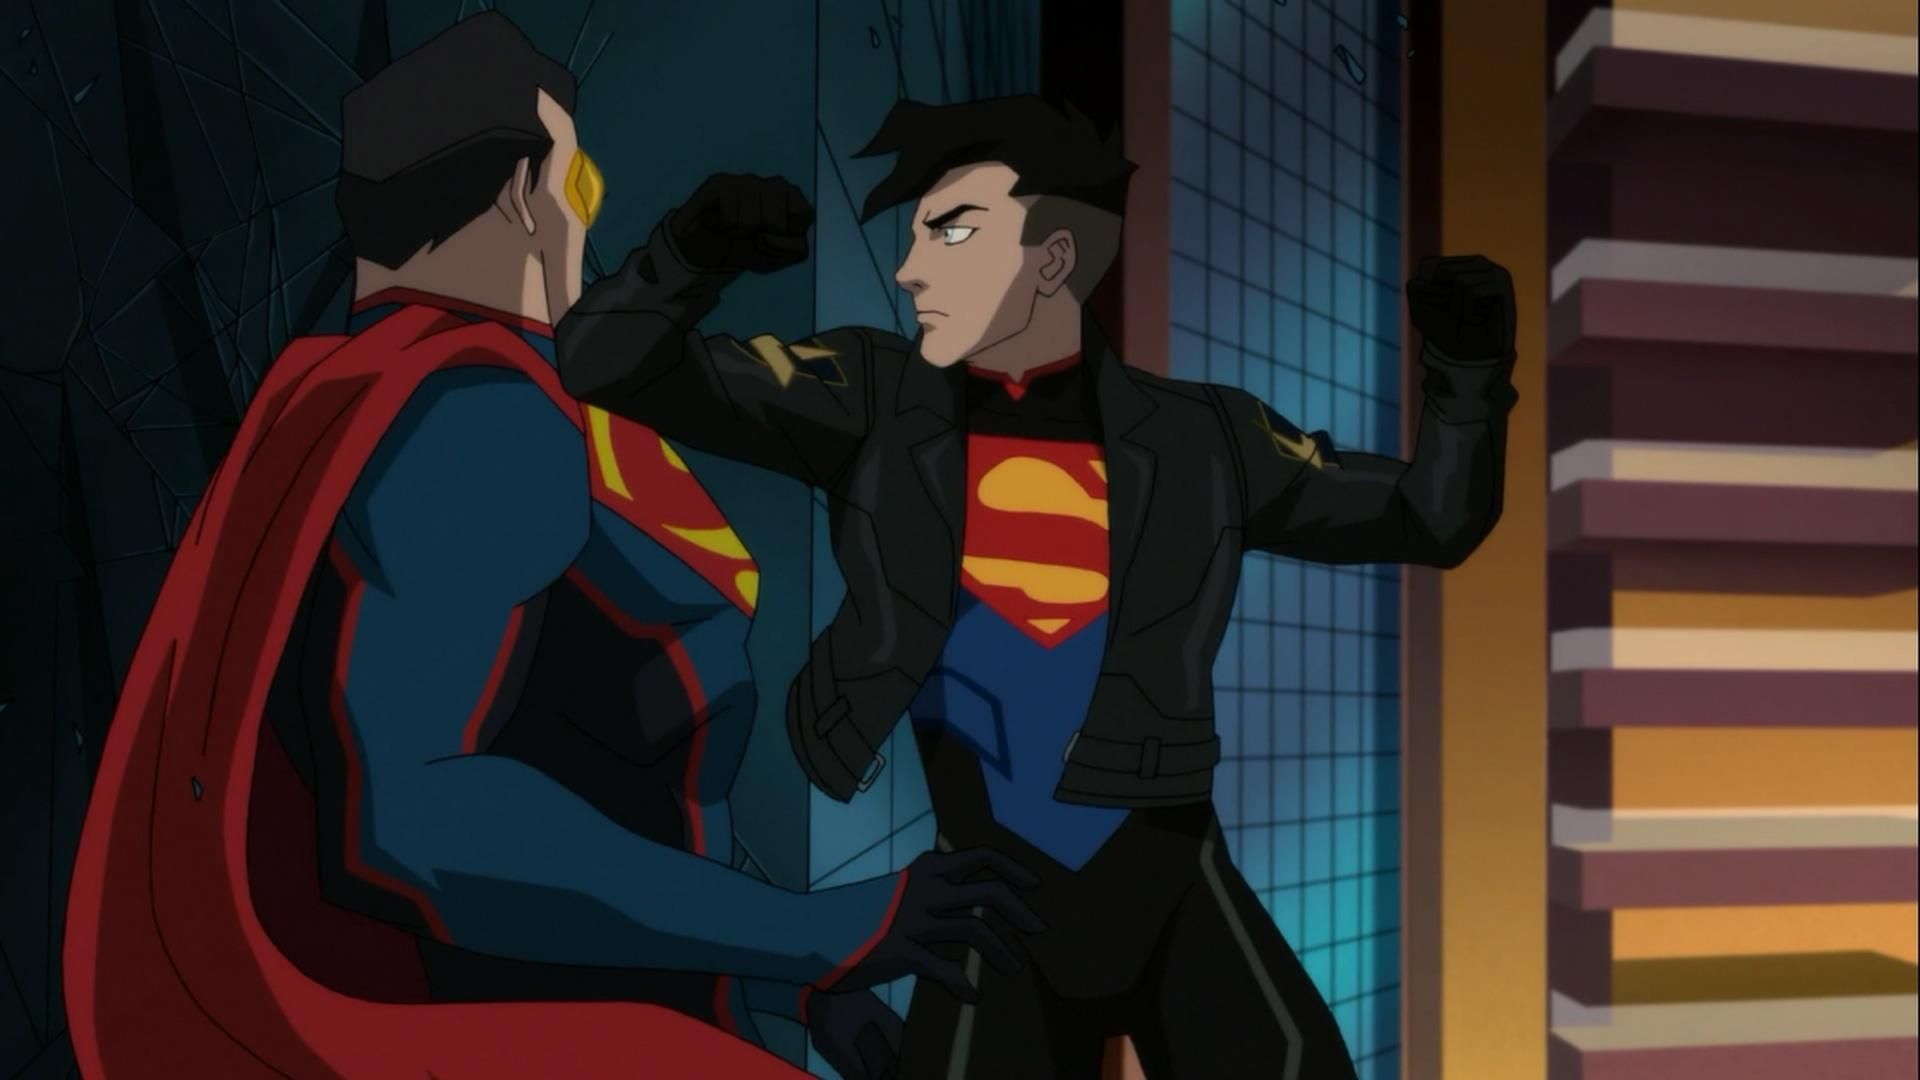 Reign Of The Supermen Wallpapers - Wallpaper Cave